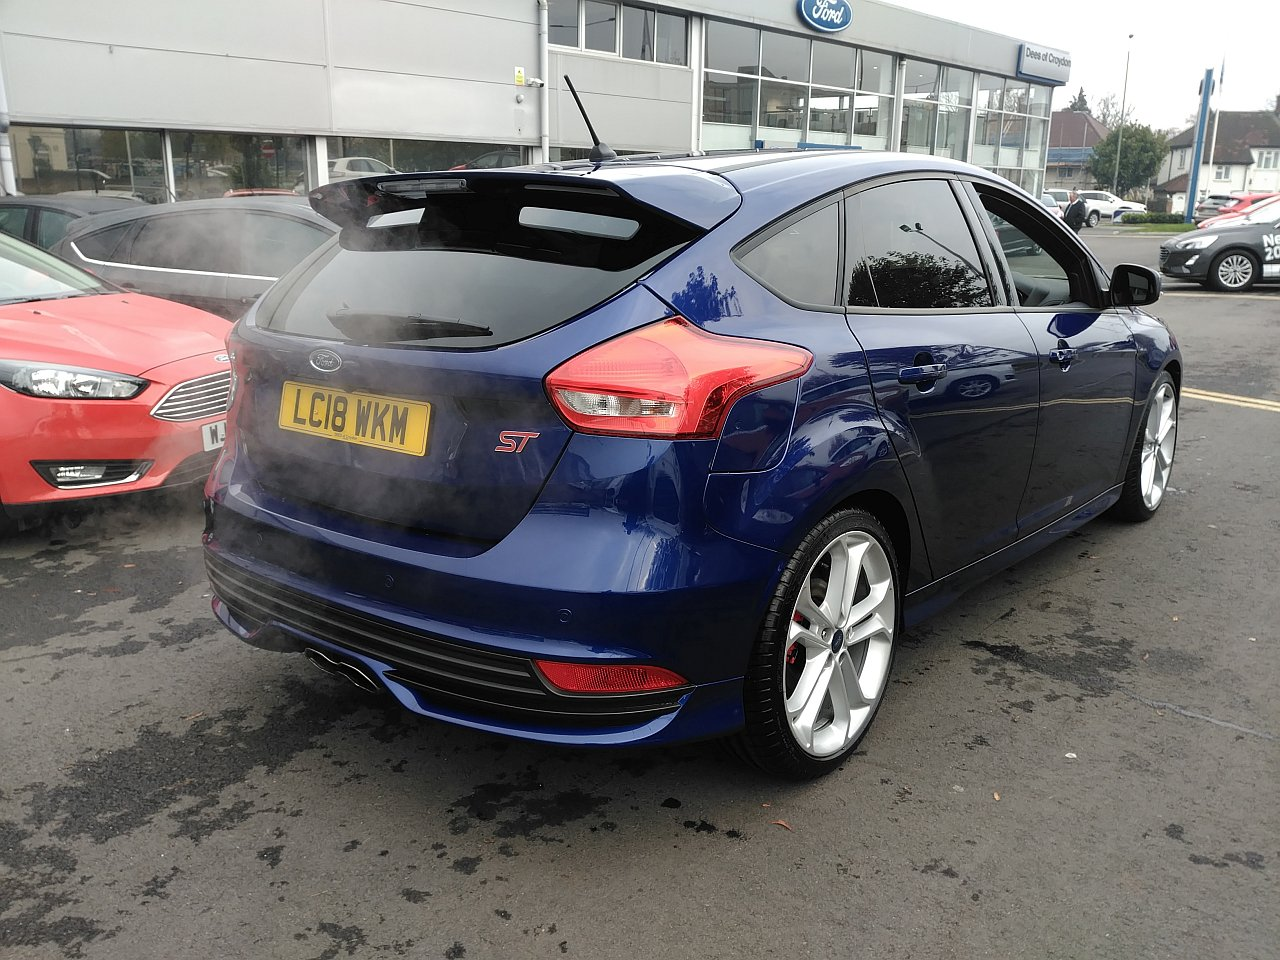 Ford Focus ST St-3 Turbo image 6